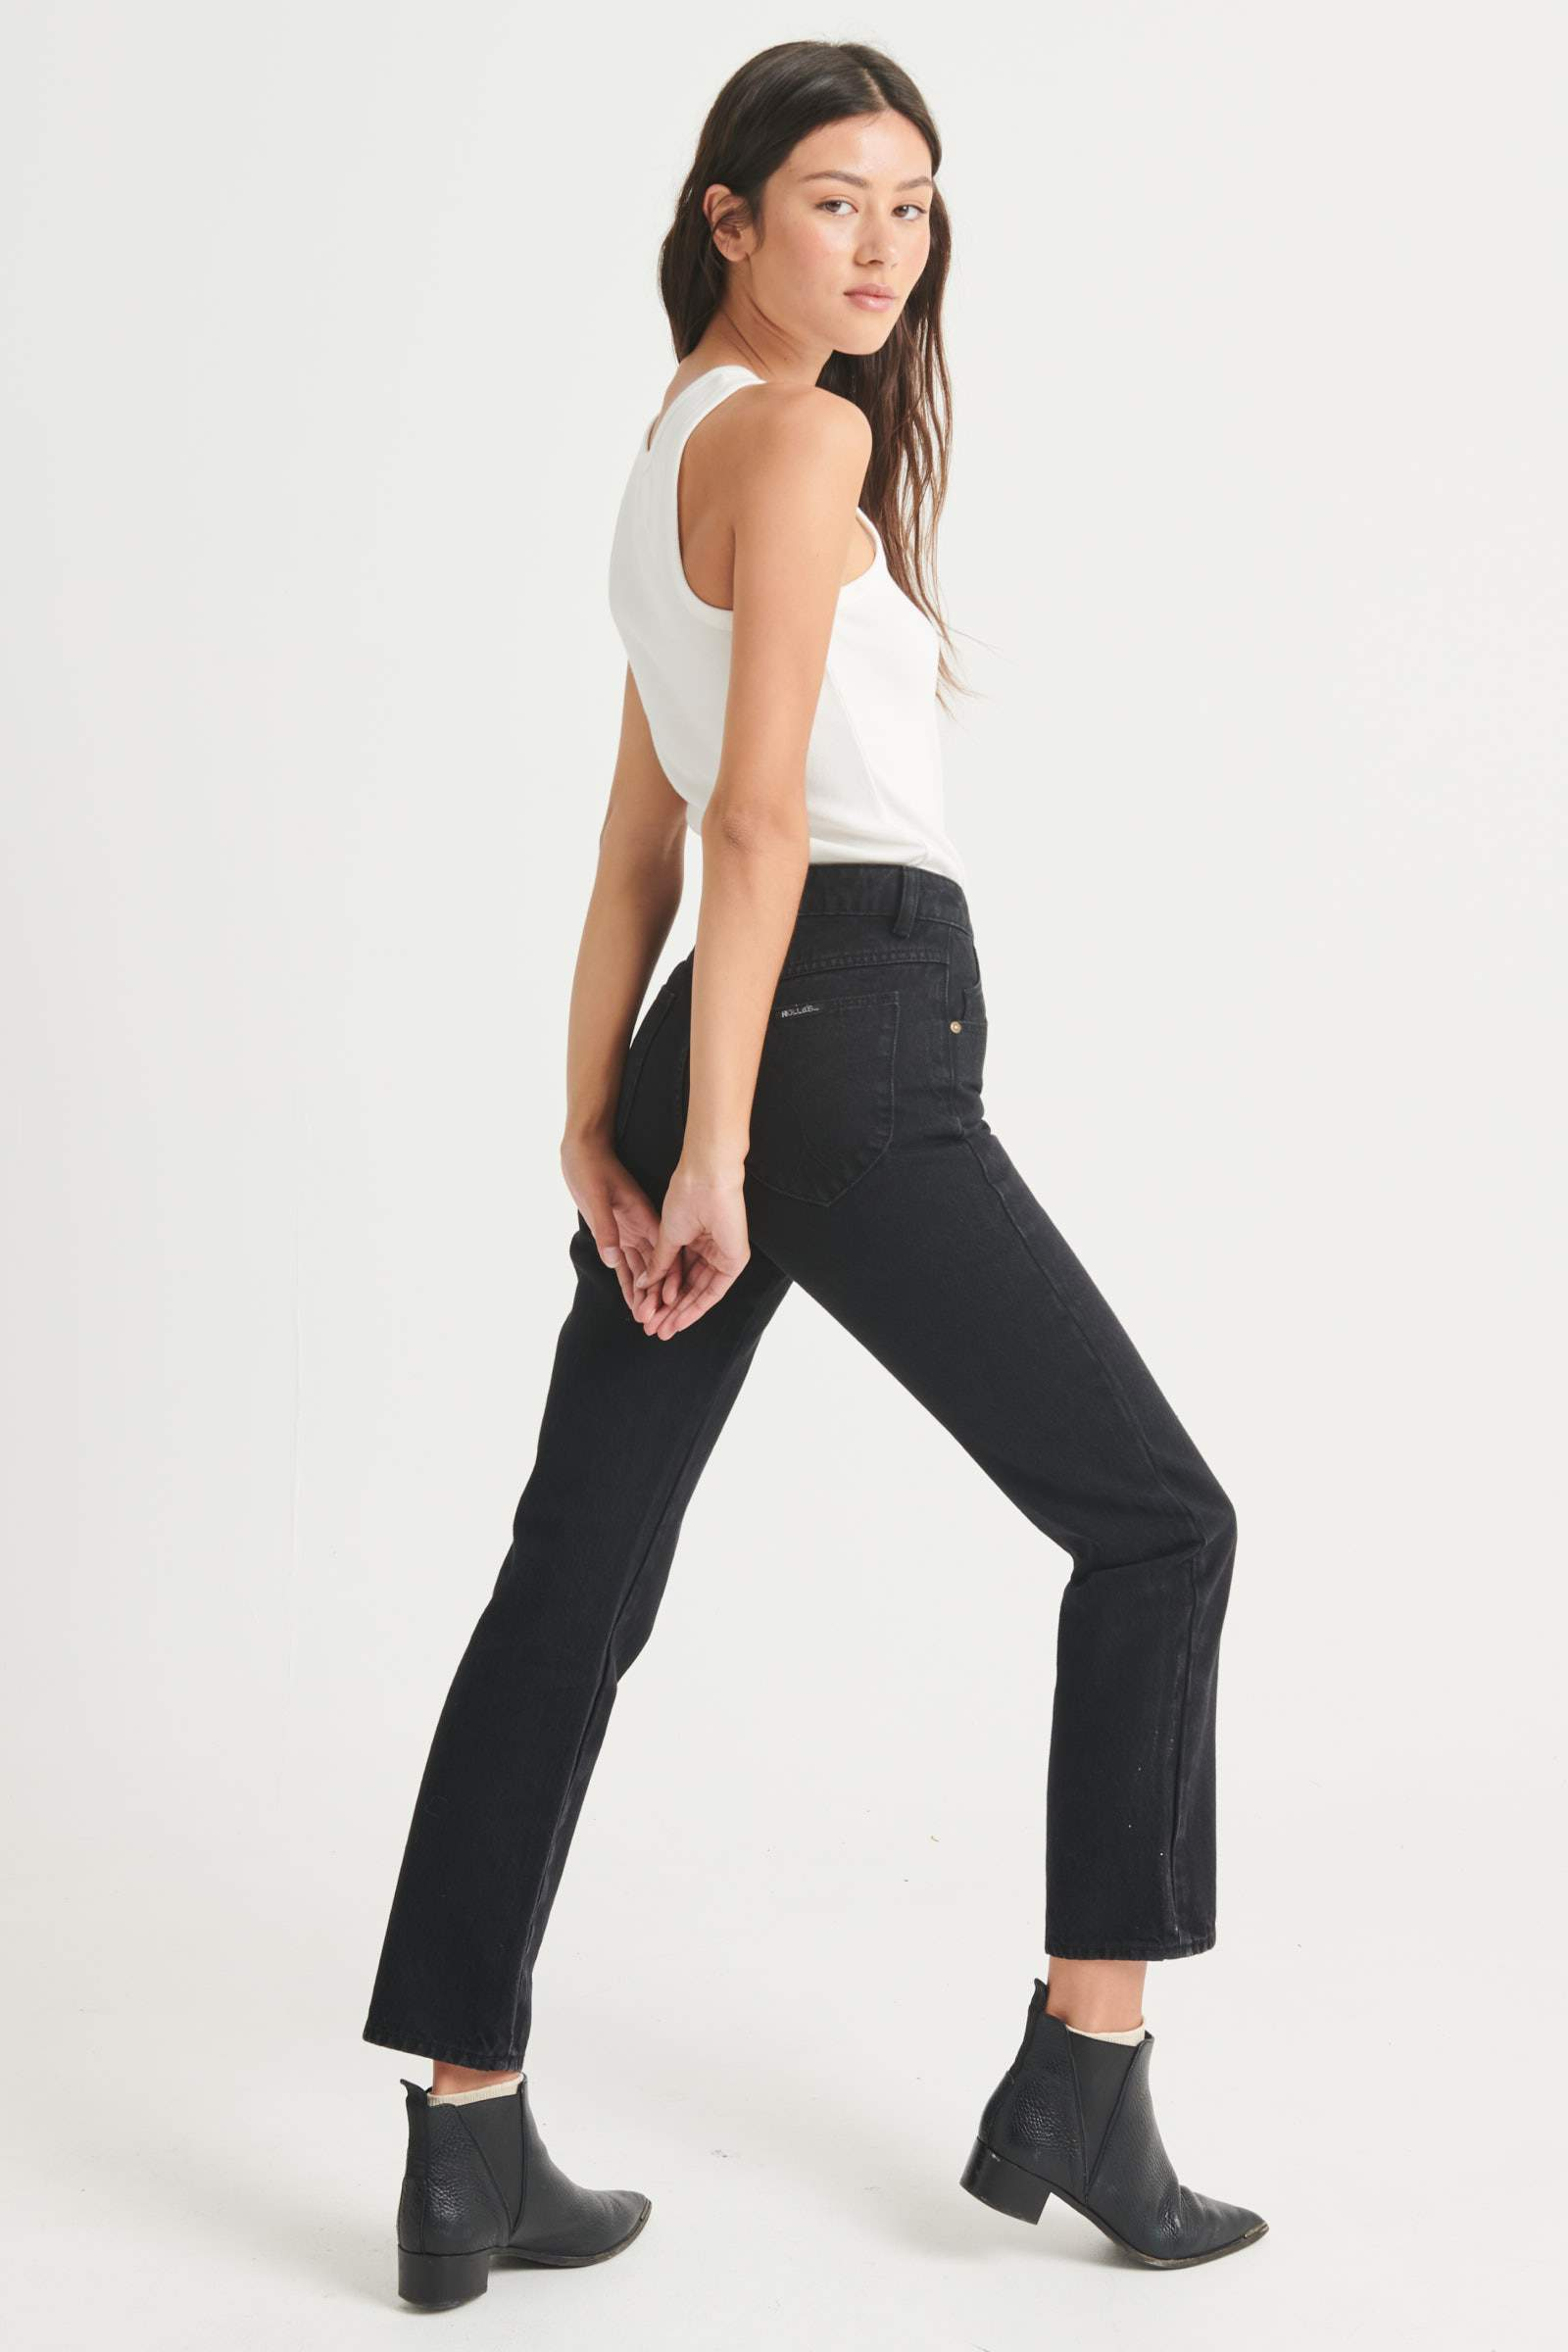 The Original Straight Jeans in Ash Black by Rolla's